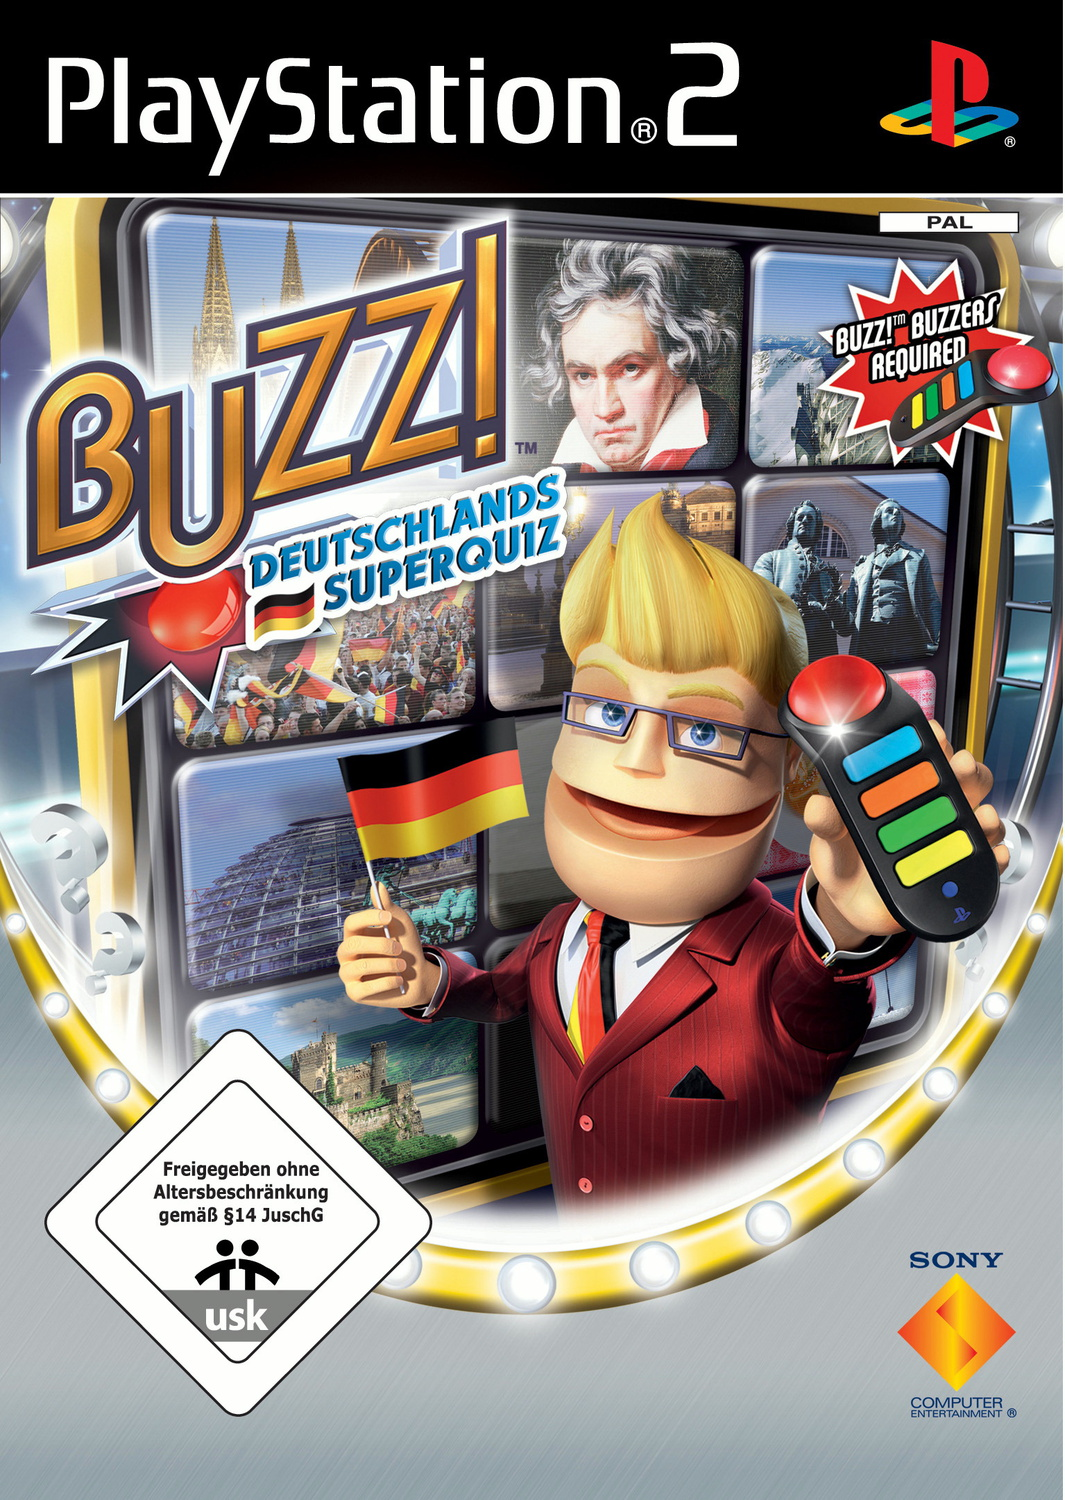 Buzz! Deutschlands Superquiz Standalone